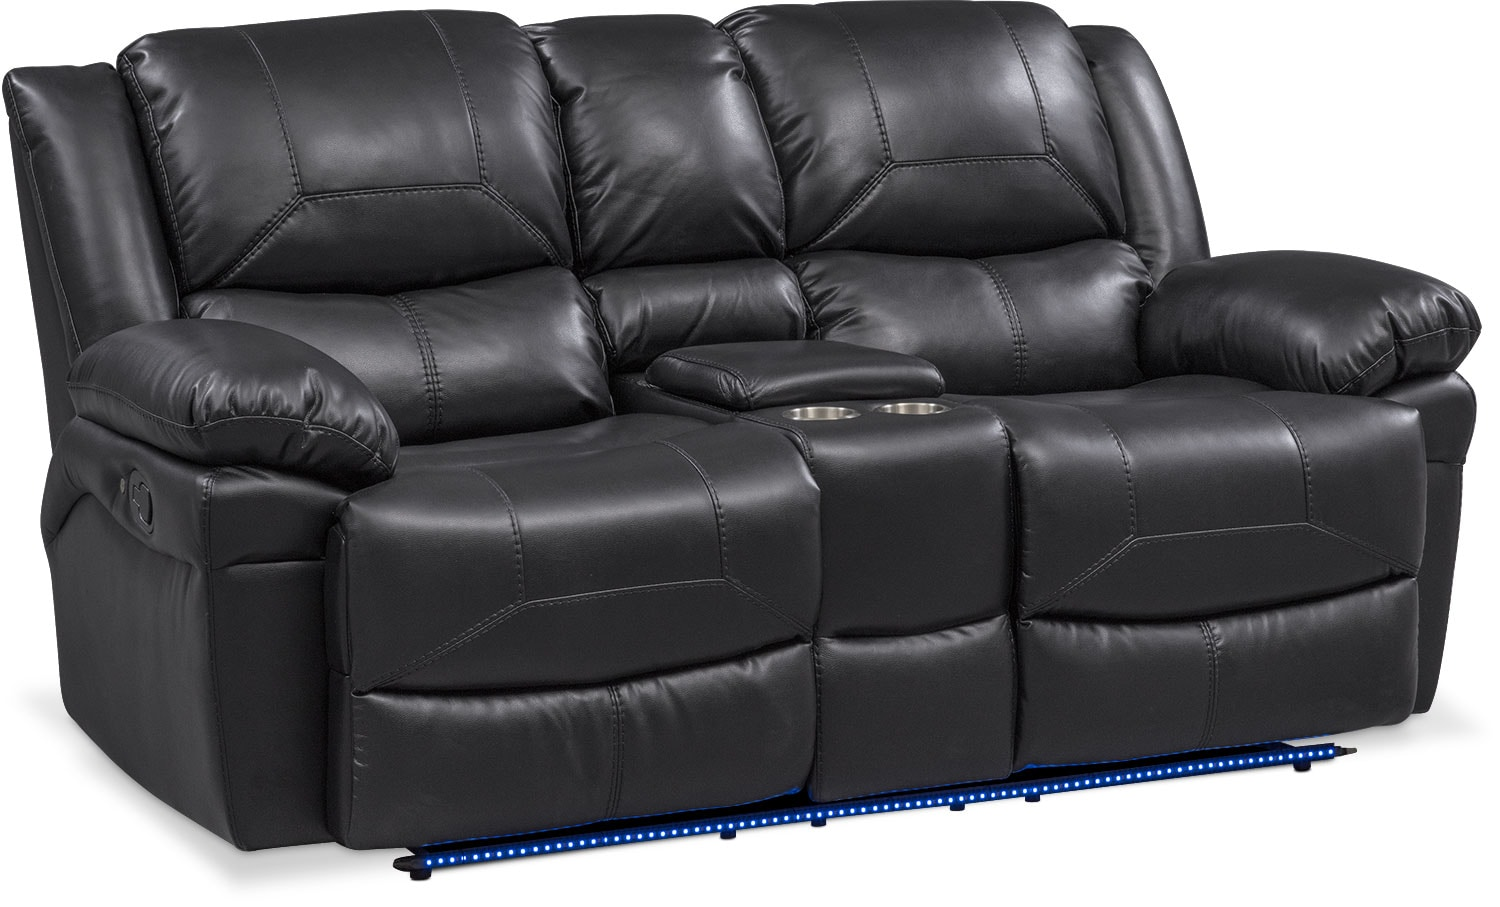 Monza Manual Reclining Loveseat With Console   Black ...